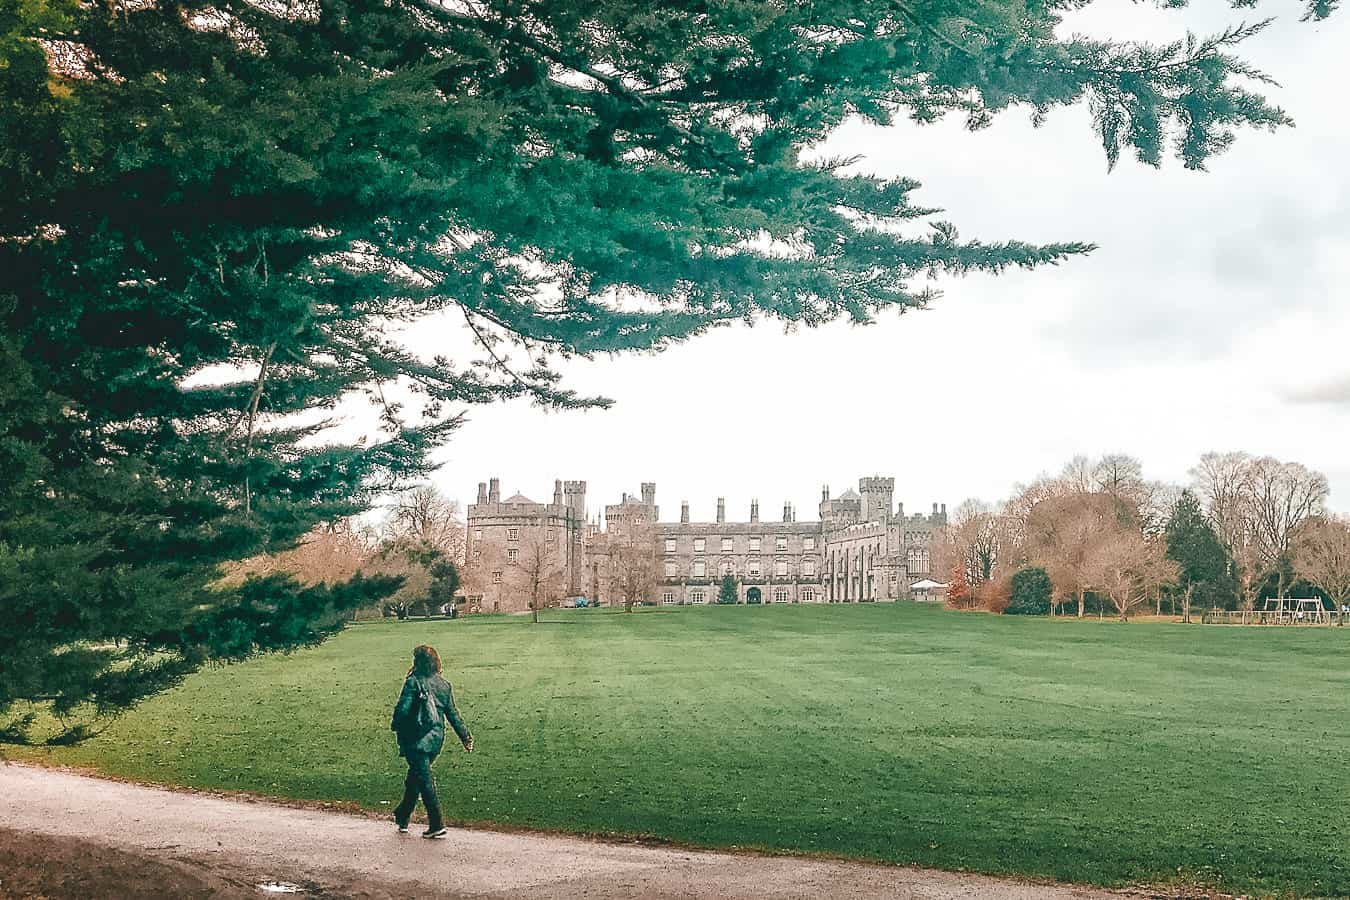 A person walking passed a castle in the distance